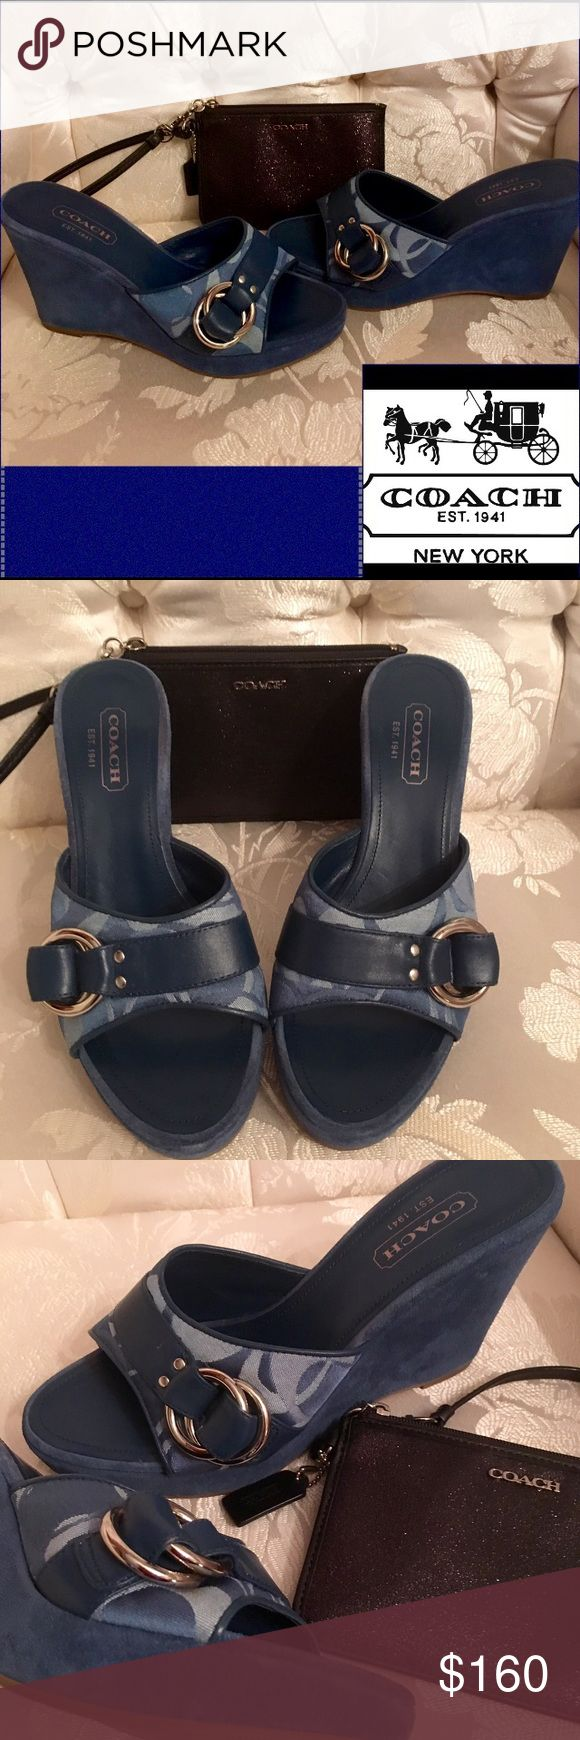 🆕Coach💙Meredith💙Blue Suede💙Logo Wedges💙A0130 Well,it's one for the money💙Two for the show Three to get ready Now go,cat,go But dont you Step on my Blue Suede Shoes You can do anything But stay off of my Blue Suede Shoes Well,you can knock me down Step in my face Slander My name All over the place Do anything that you want to do💙But uh uh,Honey💙Lay off of My Shoes☺️PeepToe Wedges💙4 in💙heel wrapped in suede leather💙Trimmed in Coach BlueLeather 💙Signature logo print 1in…